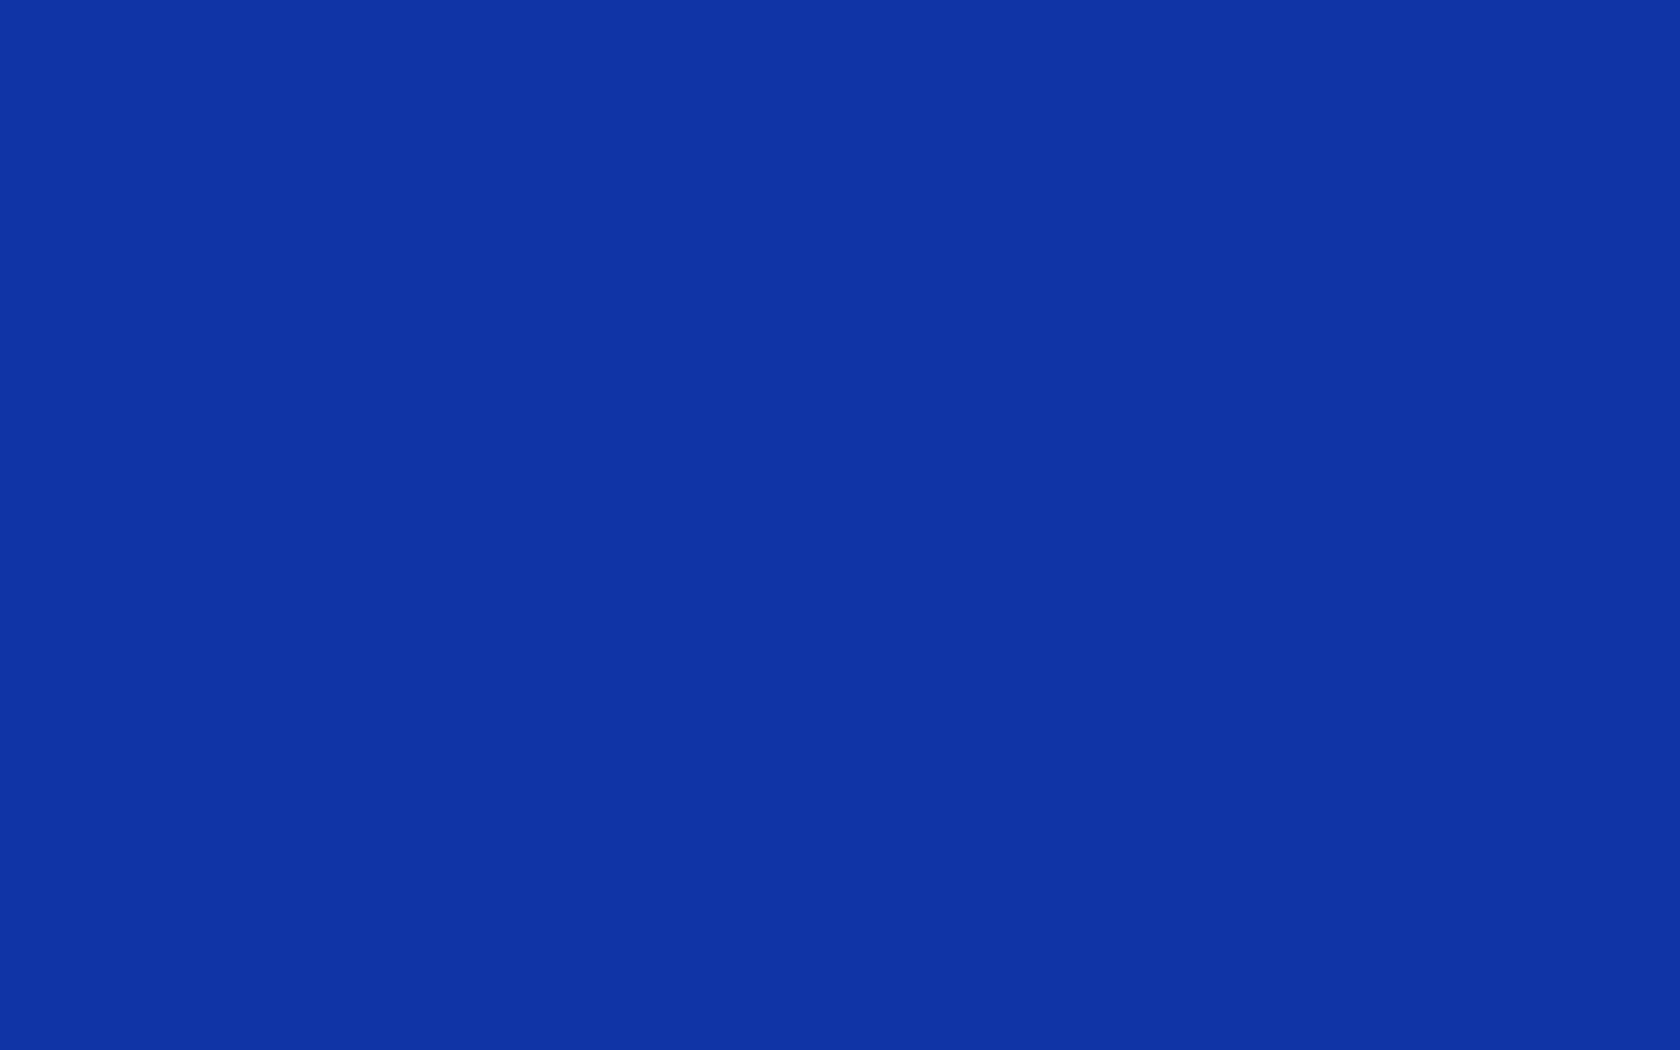 1680x1050 Egyptian Blue Solid Color Background